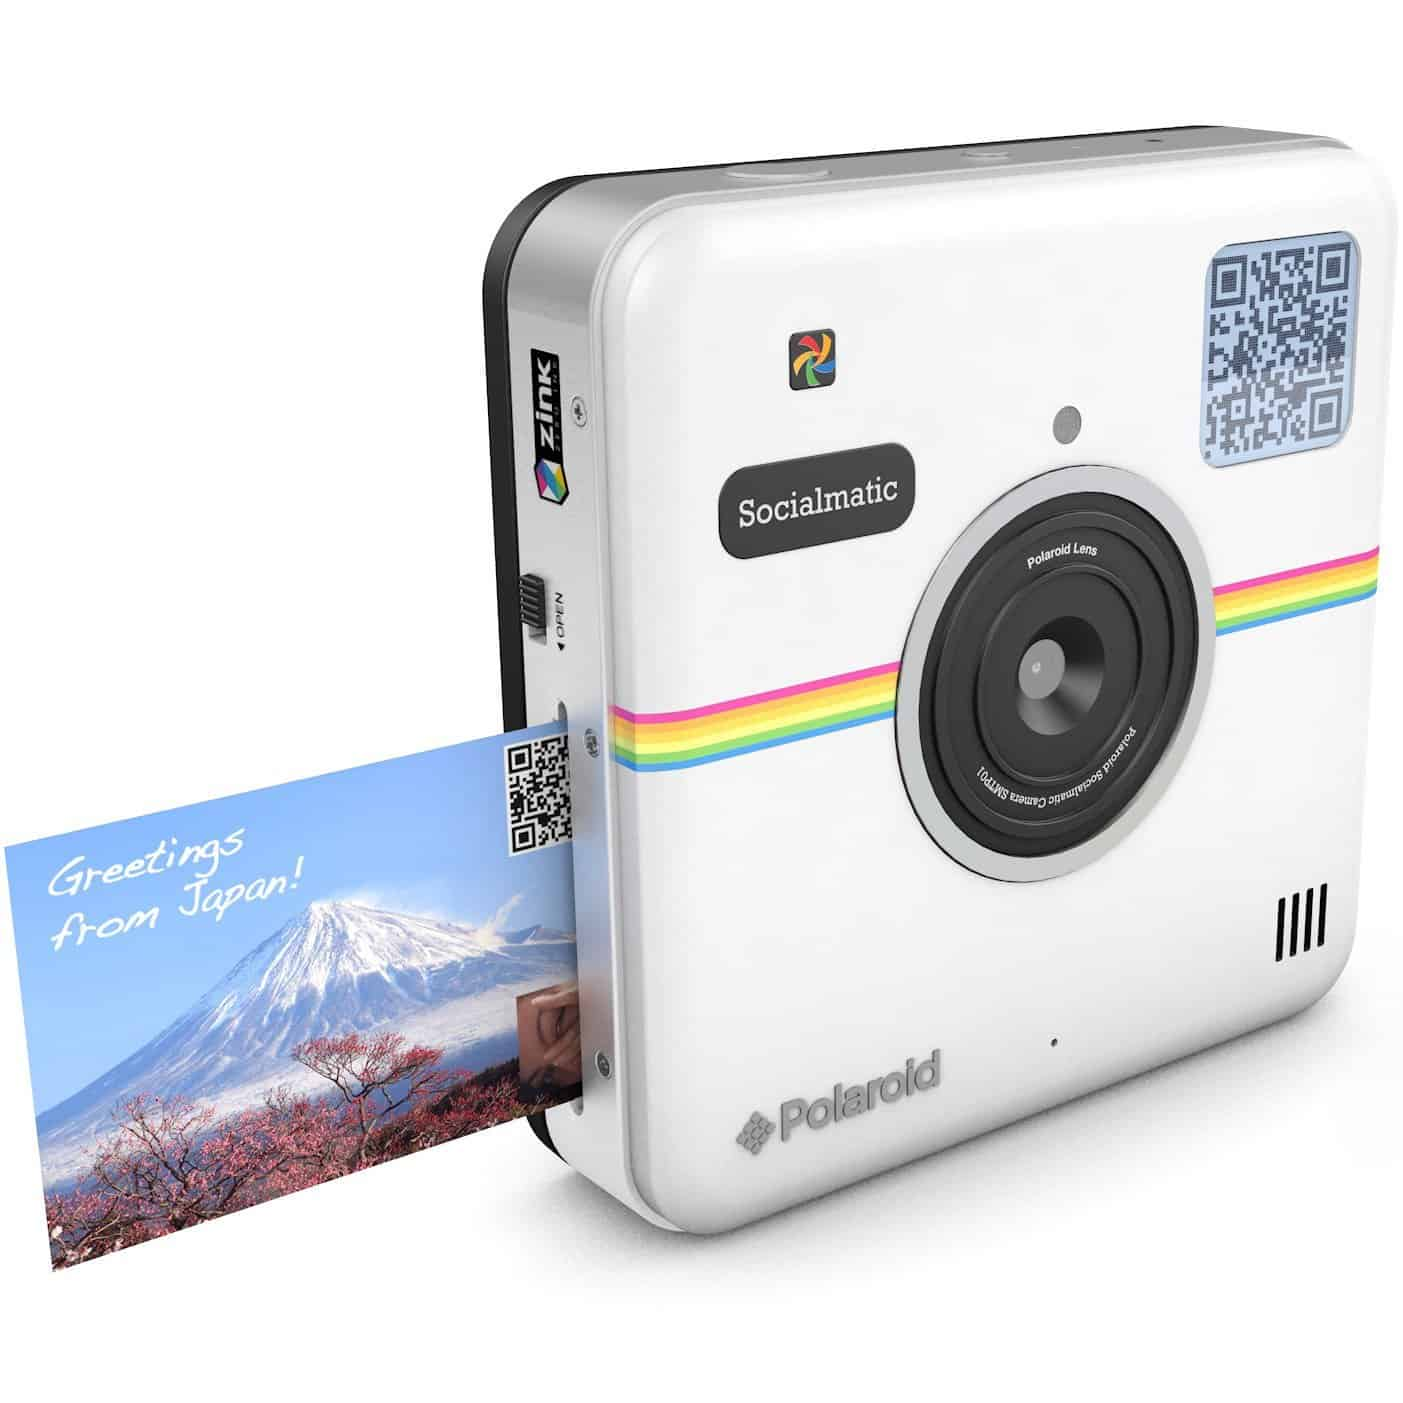 Polaroid Socialmatic Instant Digital Camera White Cool Stuff to Buy